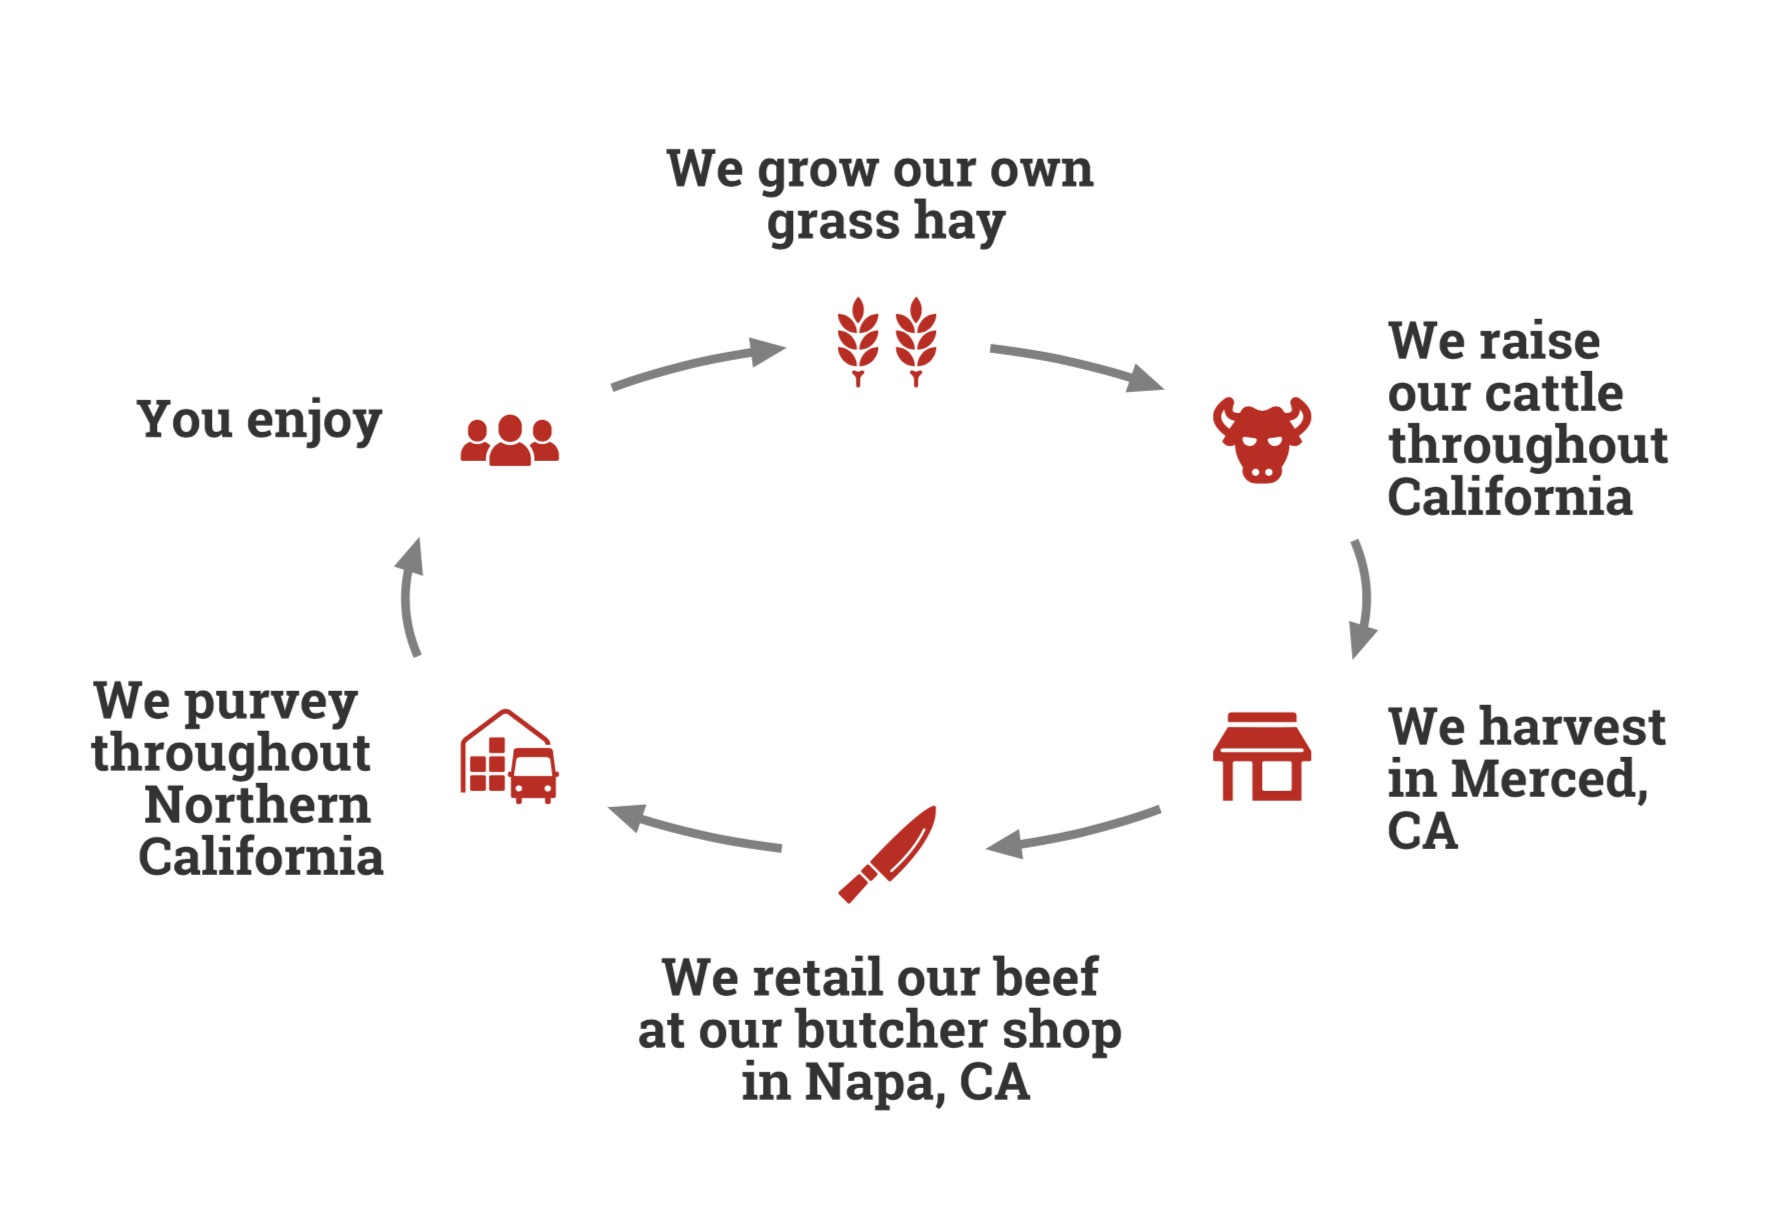 100% of Our Operations Take Place in Northern California -